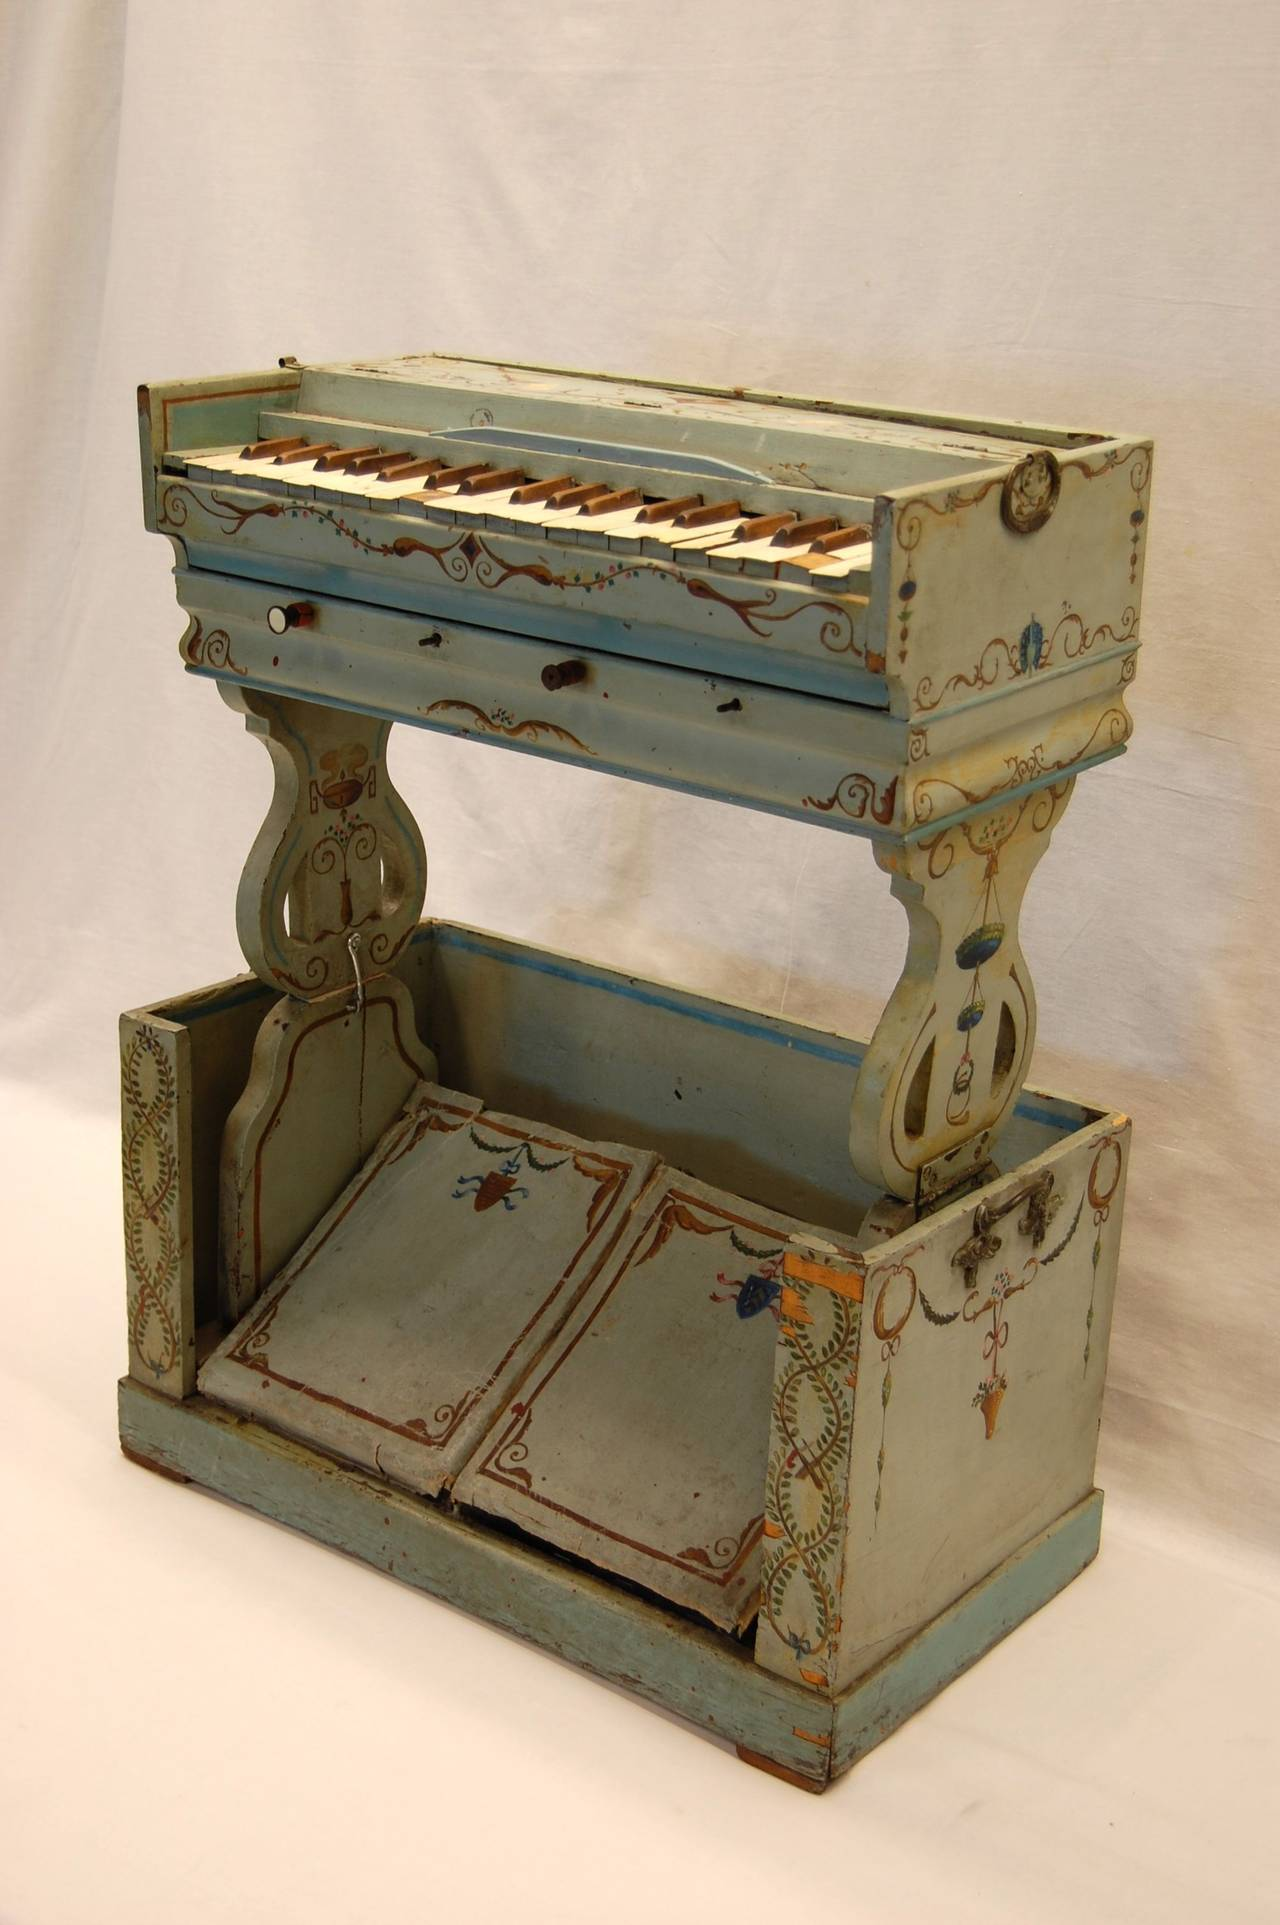 19th Century European Childs Pump Organ in Decoratively Painted Wood Case For Sale 1